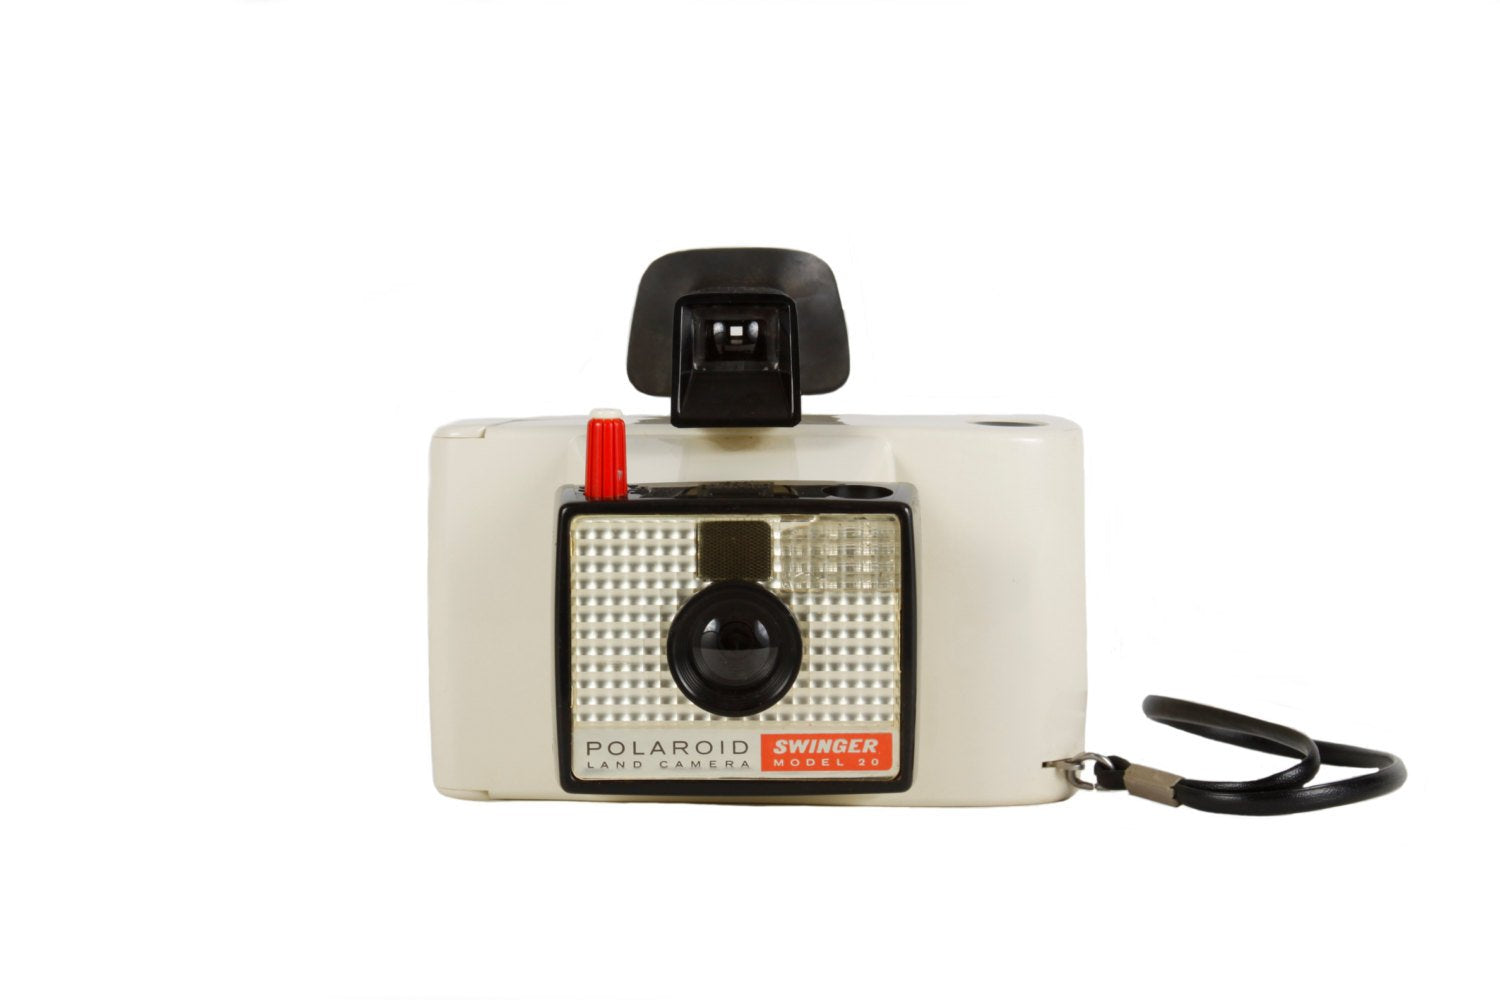 Polaroid Swinger Land Camera - Model 20 - Vintage